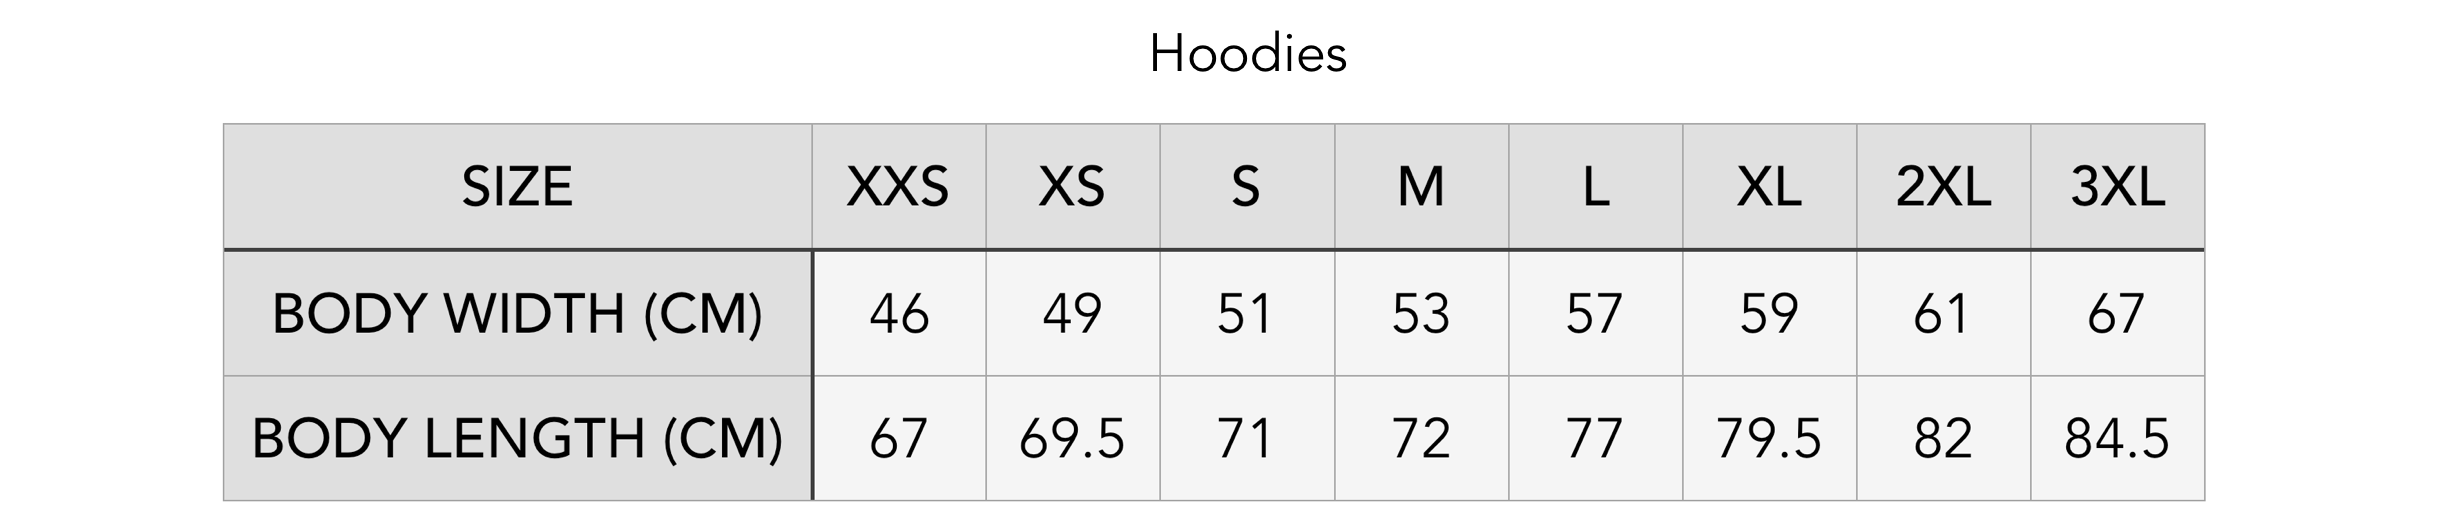 Stencil Hoodie SS Guide.png